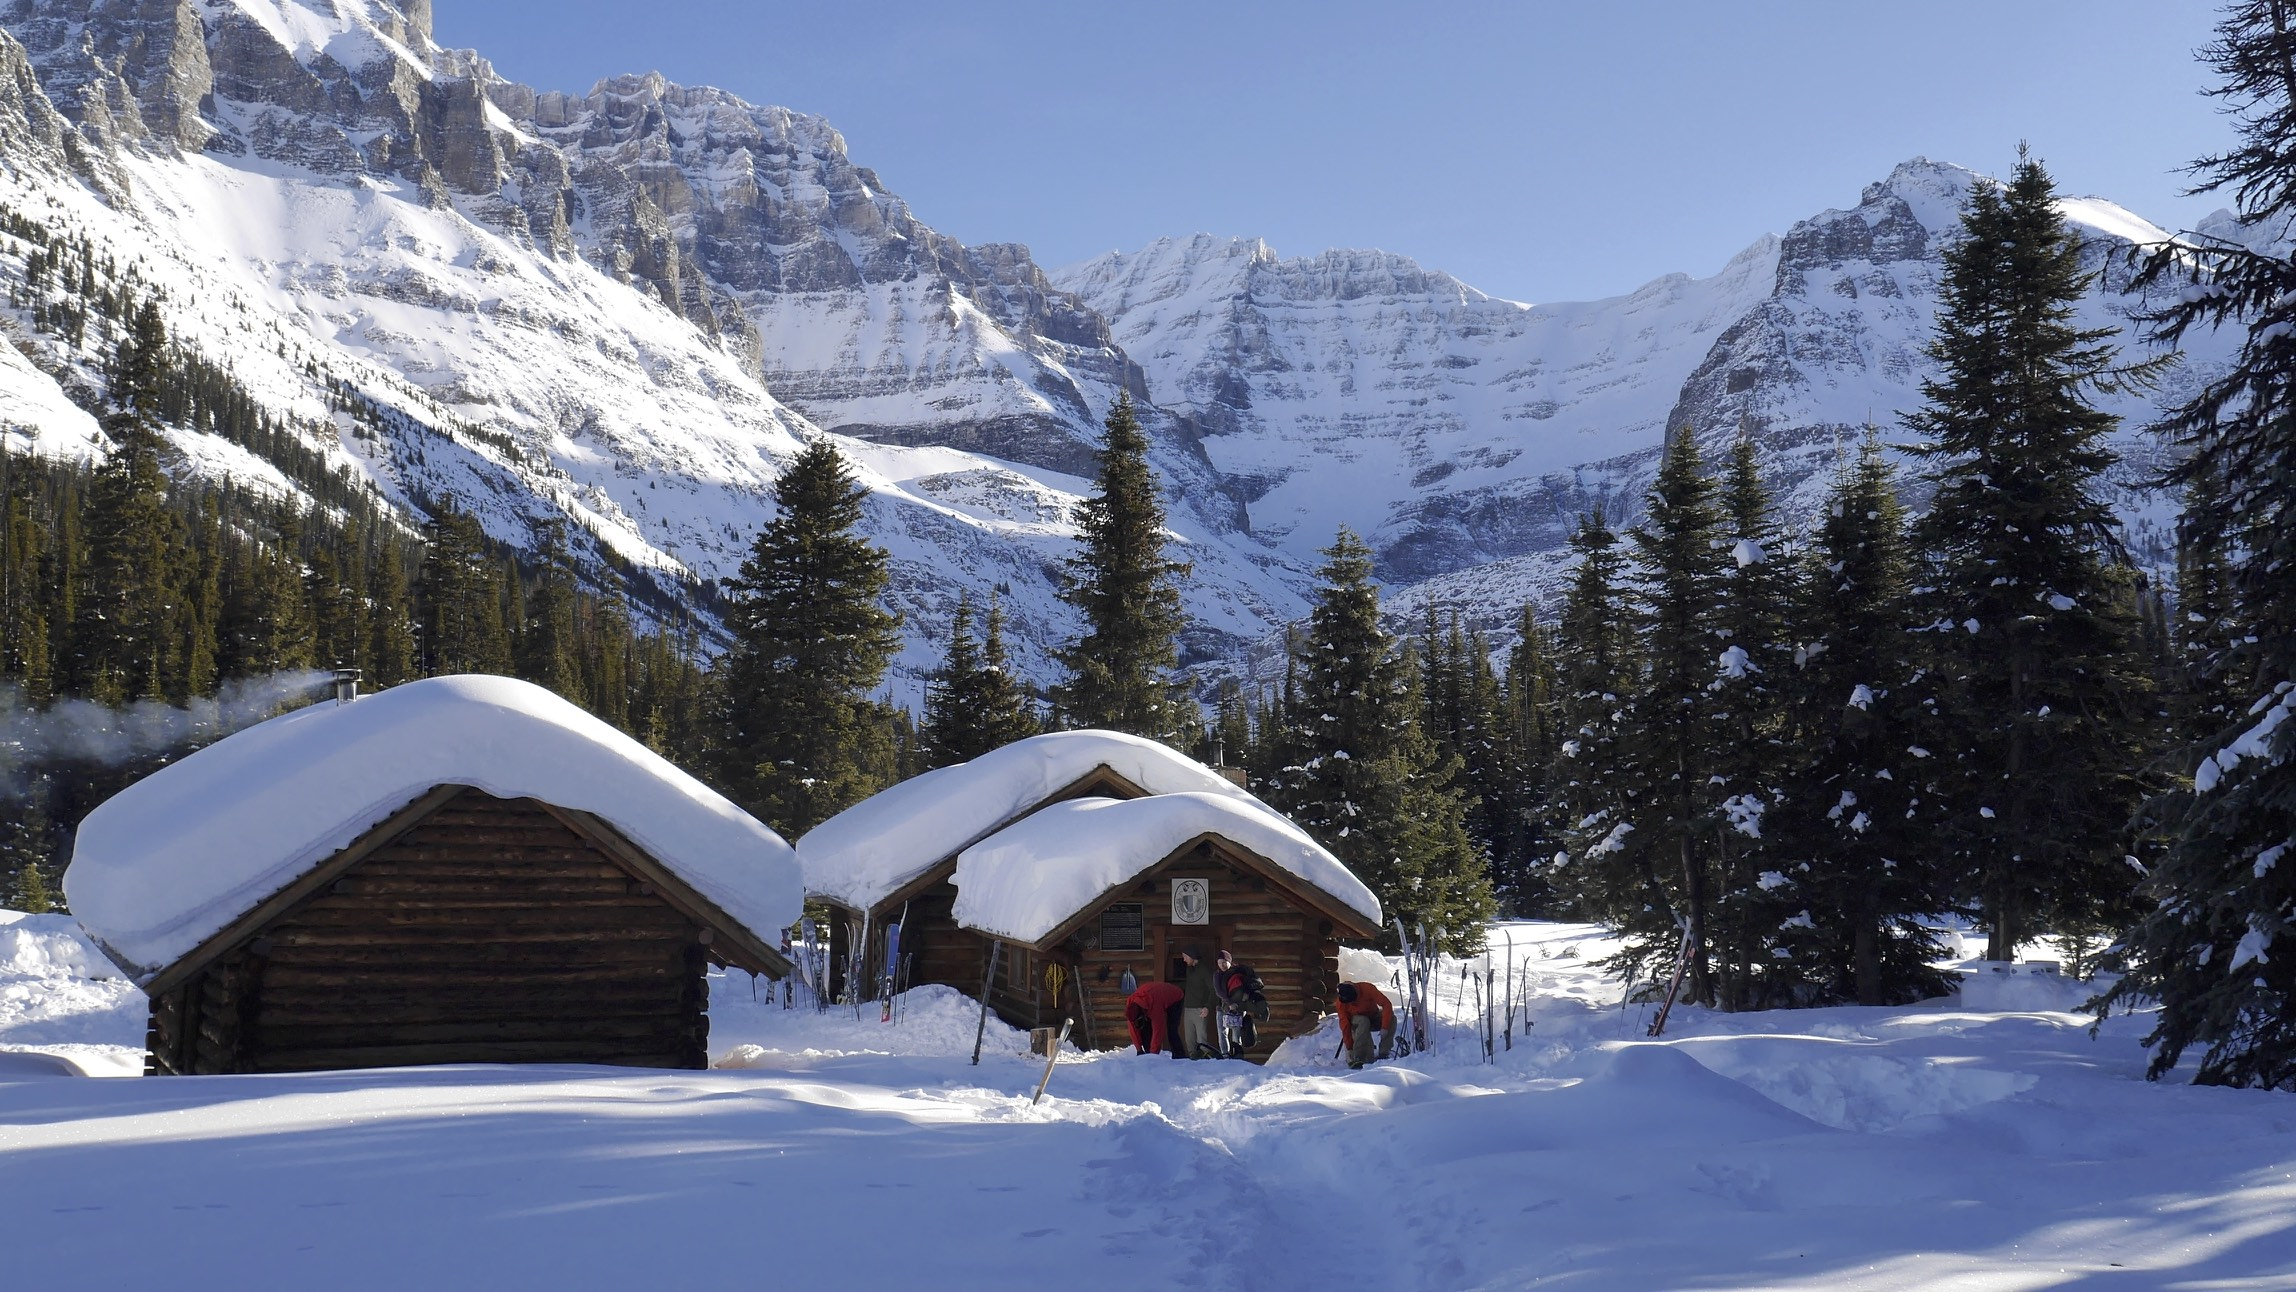 Elizabeth Parker Hut at Lake O'Hara